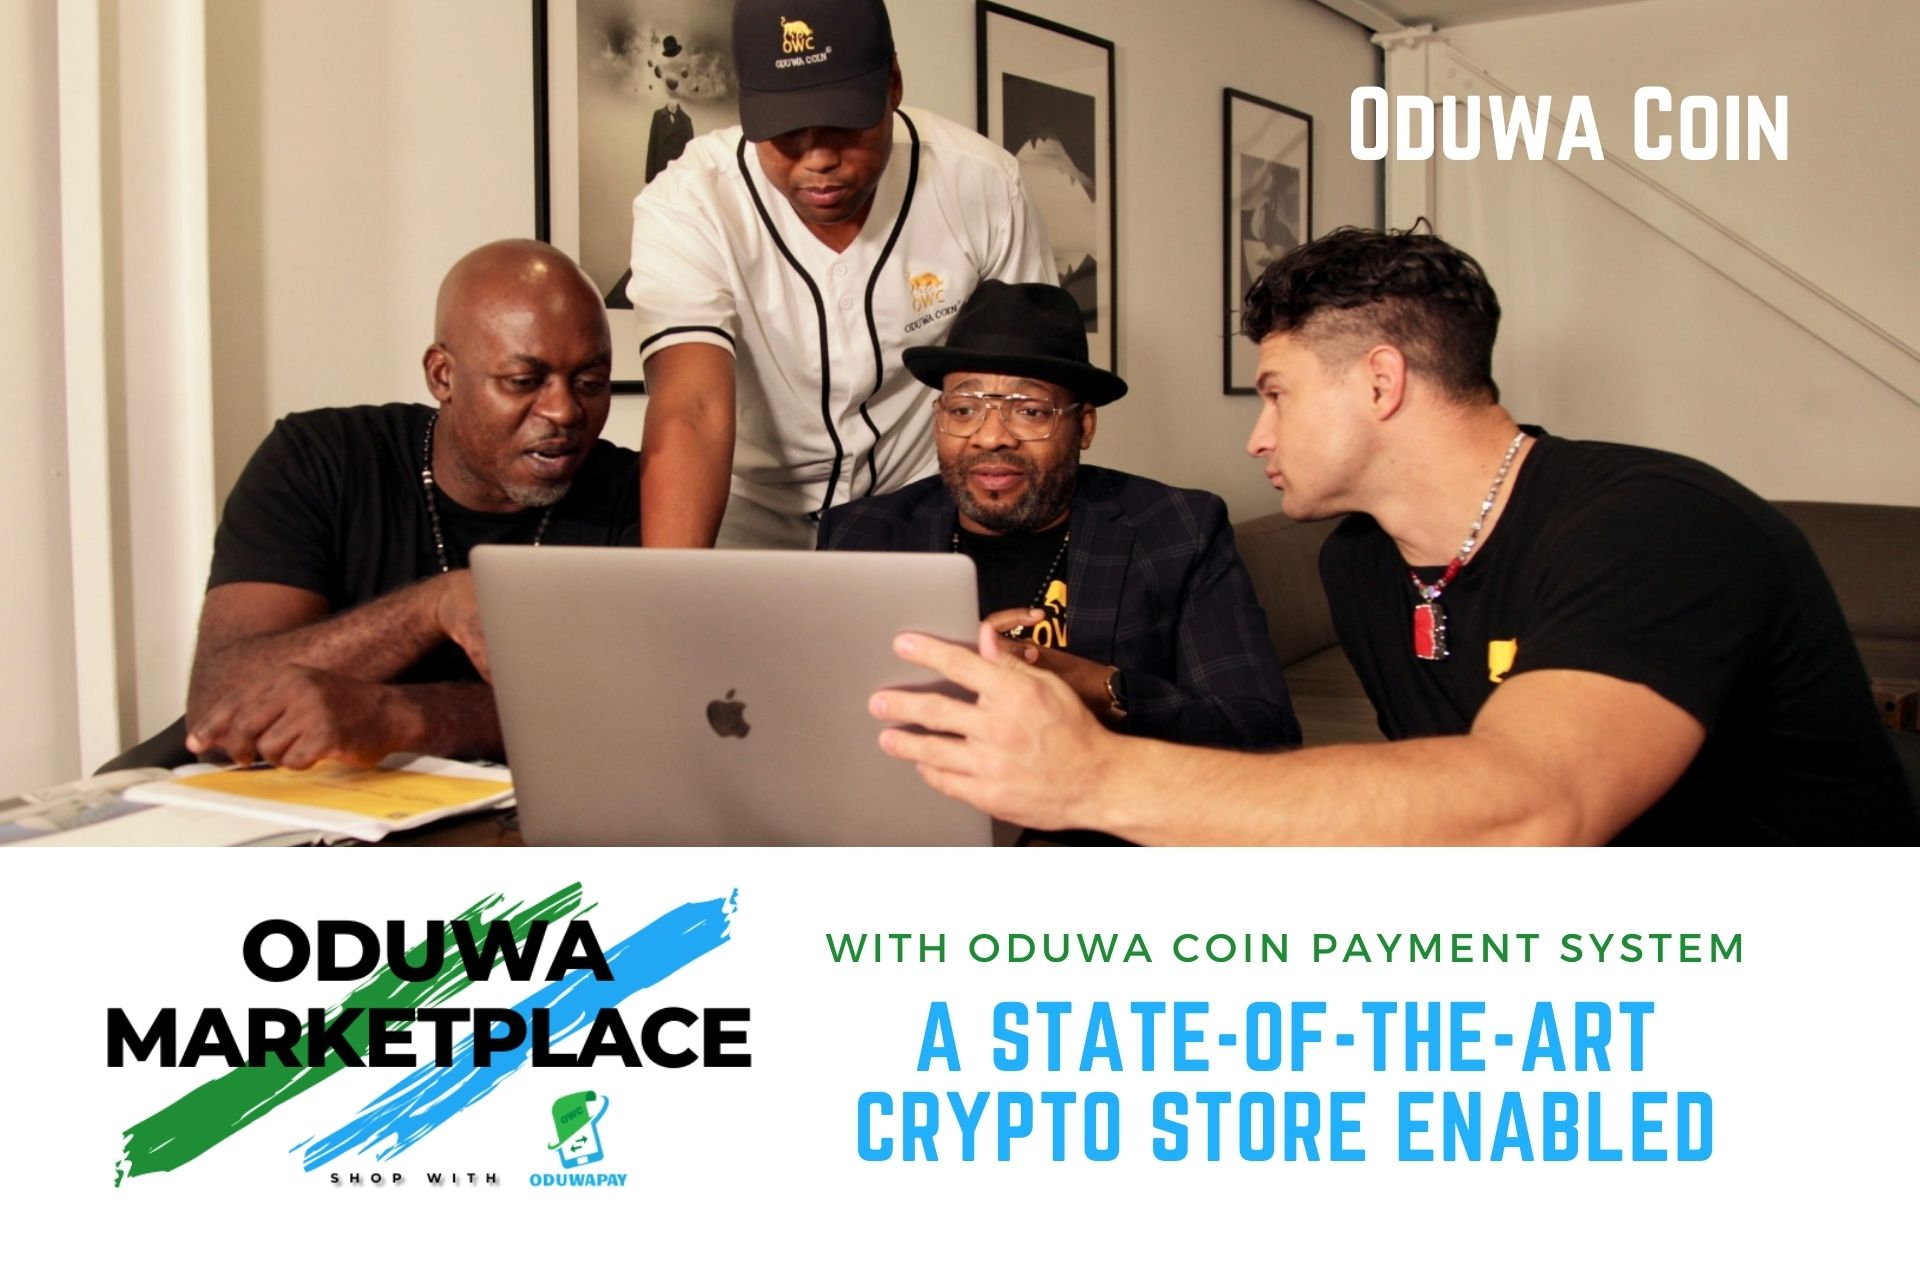 Oduwa Coin Marketplace | A State-of-the-Art Store Enabled with Oduwa Coin Payment System